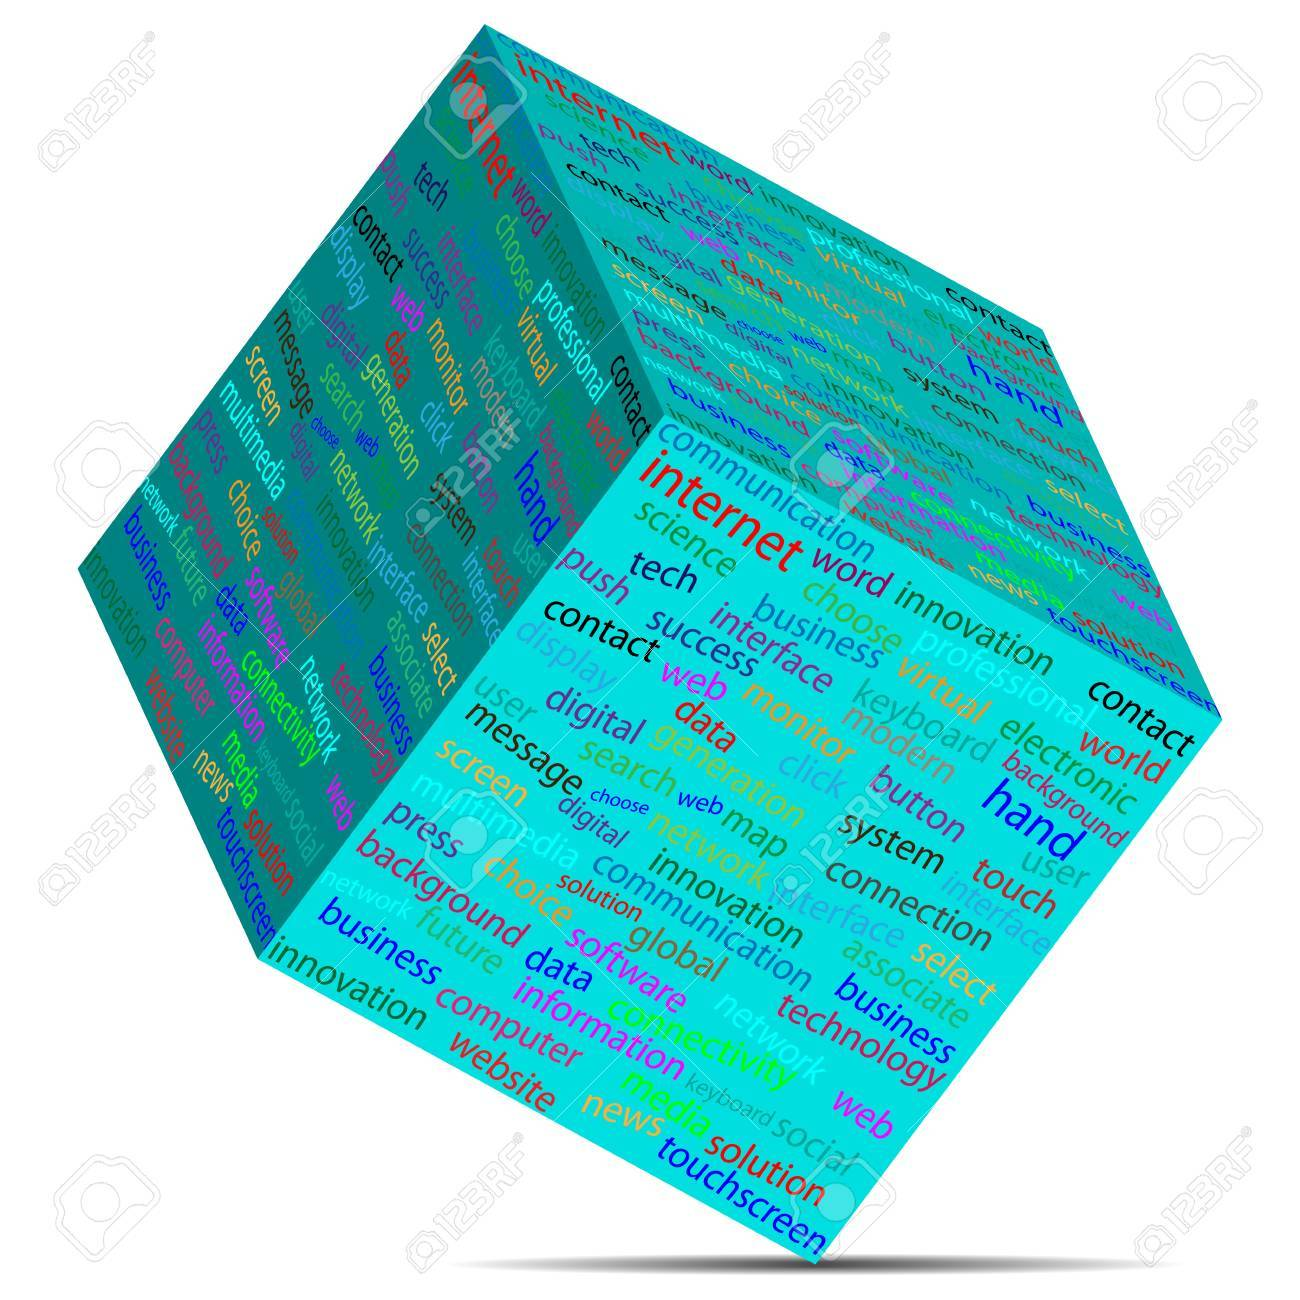 Cube with different words on the faces of designers for various necessities Stock Vector - 19622705